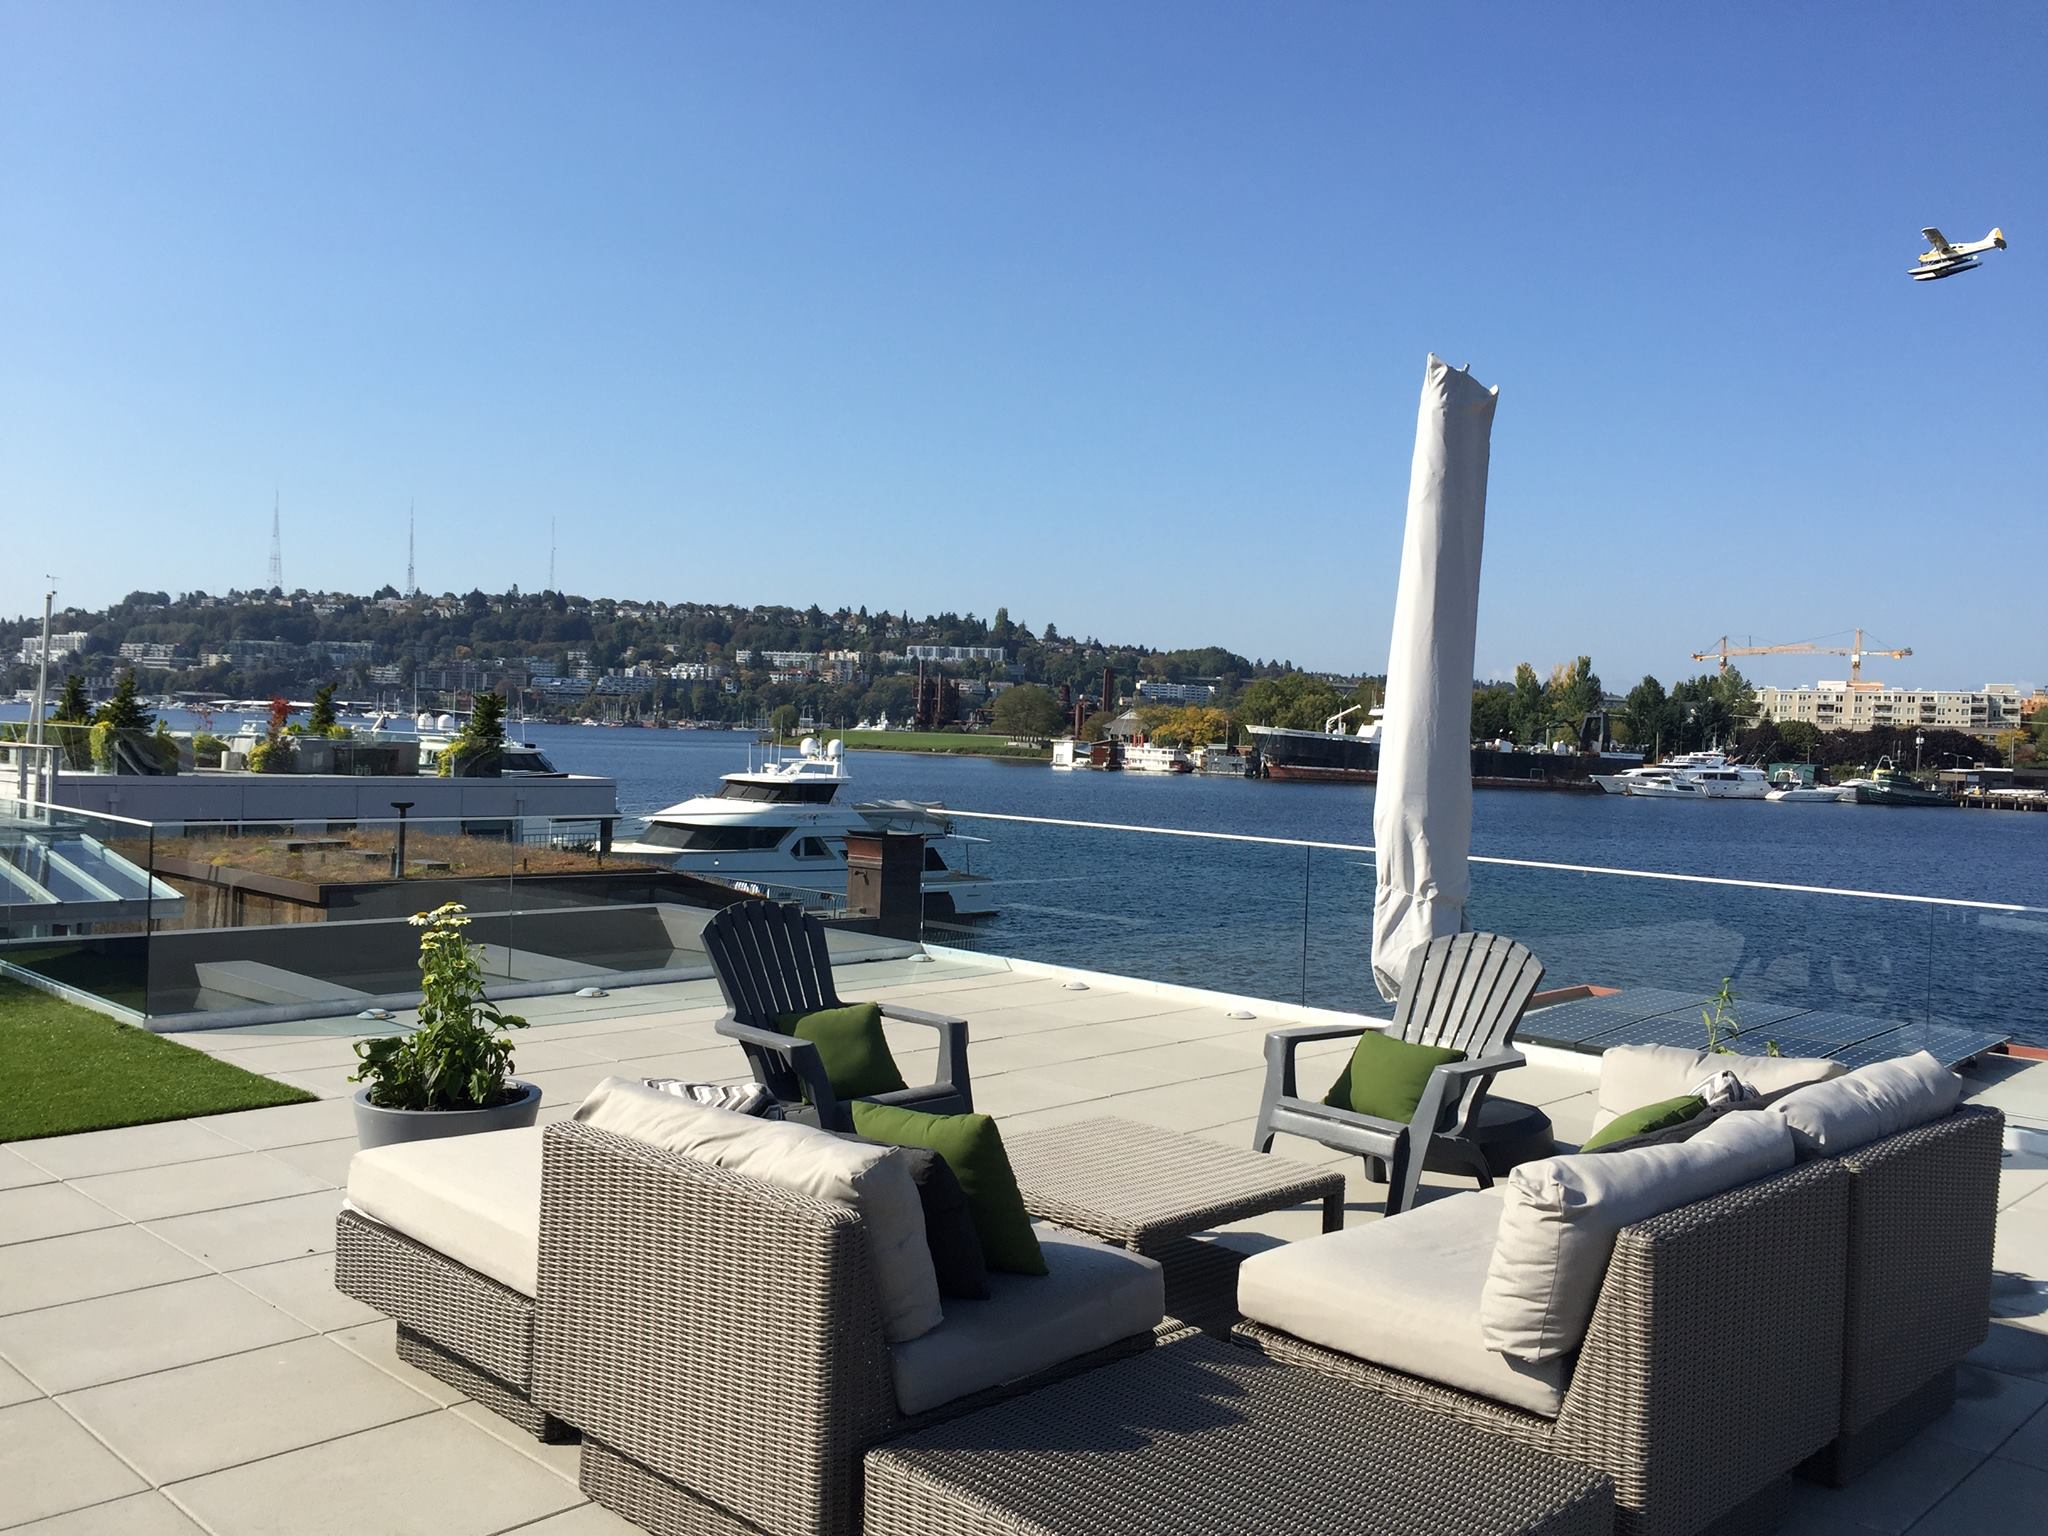 Seattle Houseboat Living: Where To Live?